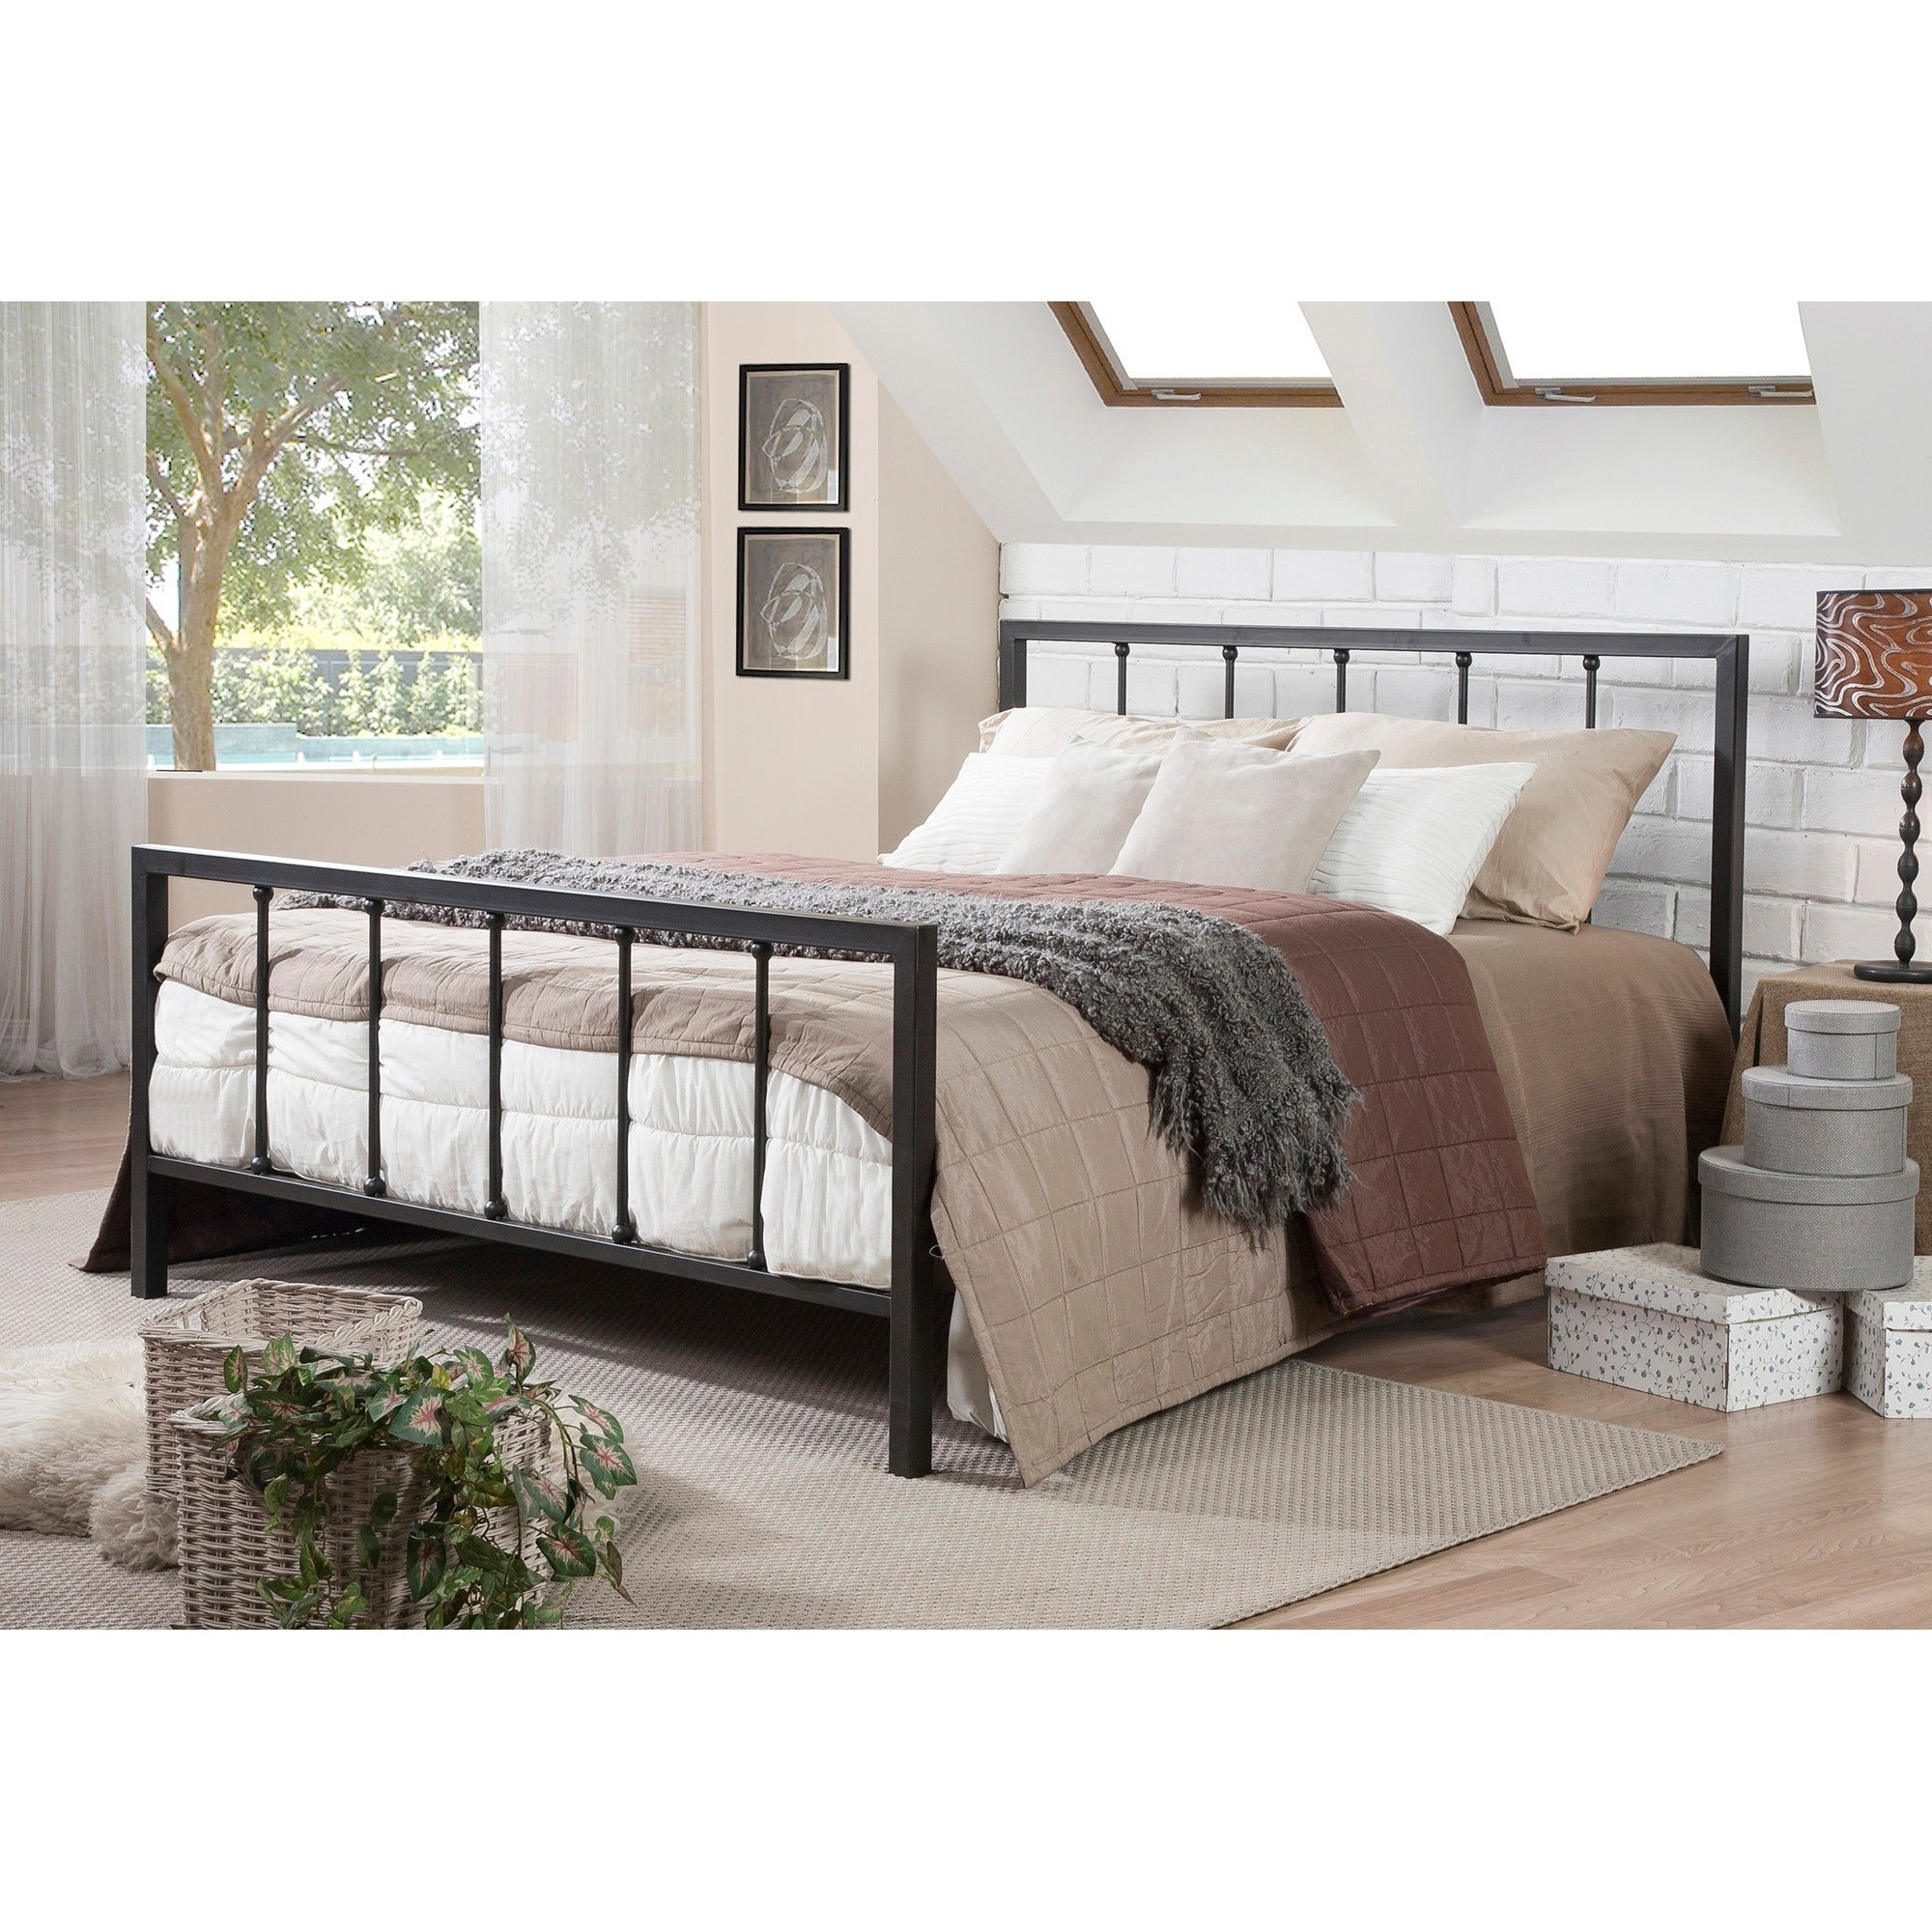 Amy Modern And Contemporary Metal Bed Overstock 19424534 Queen